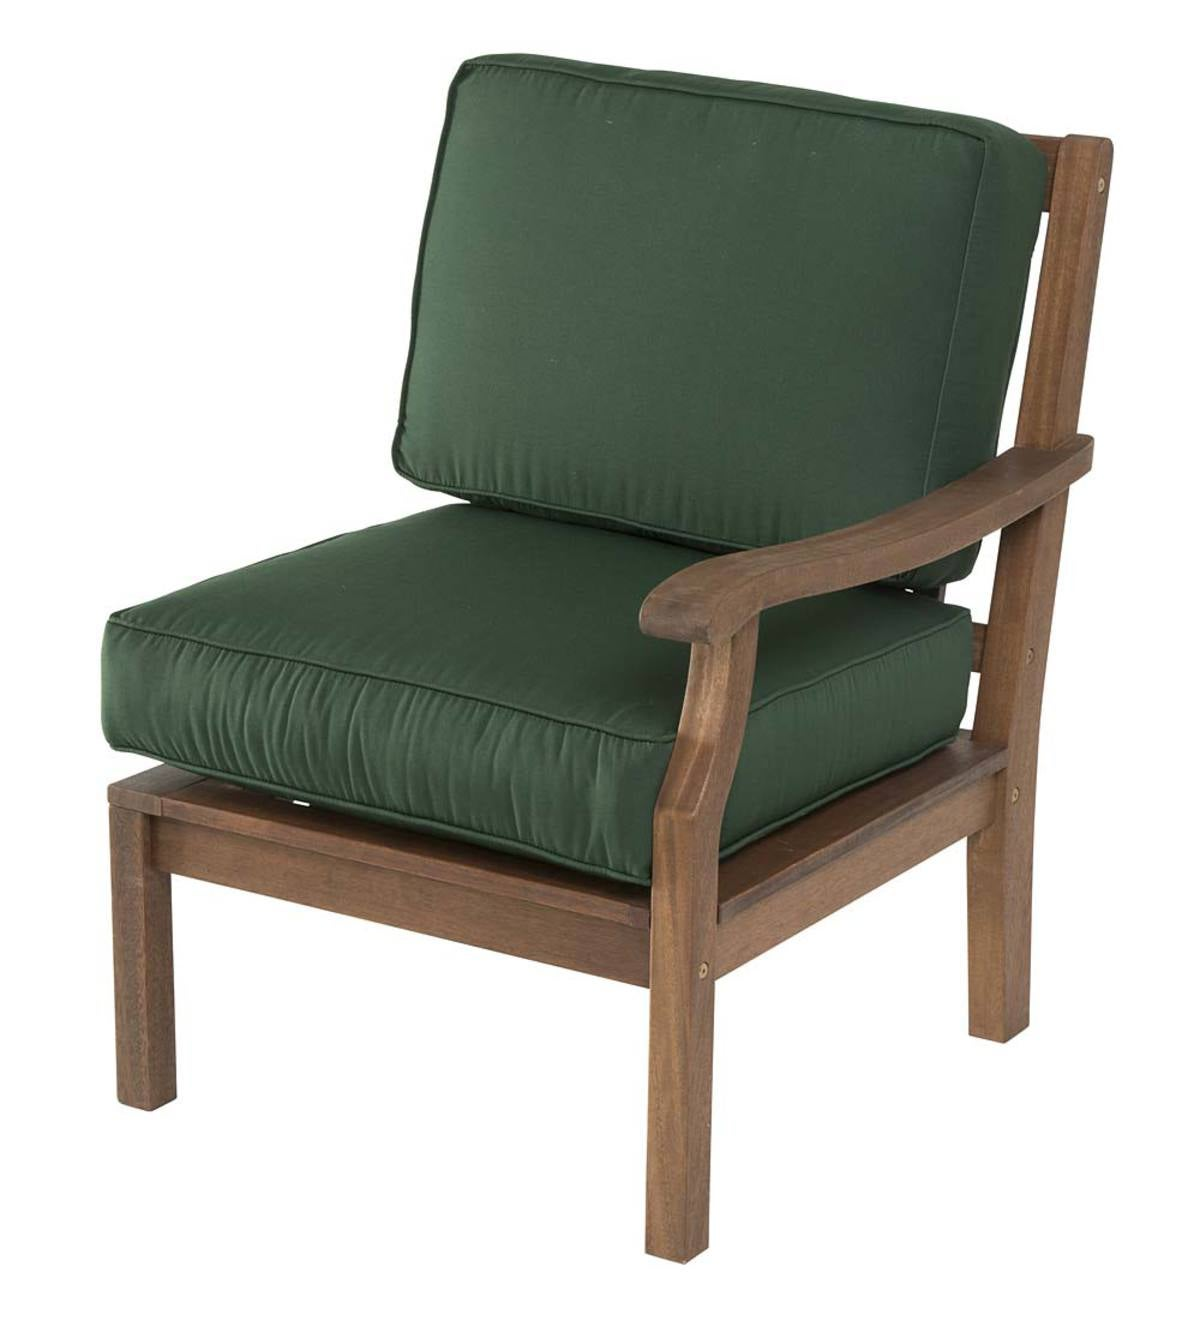 Claremont Sectional Chair with Left Arm with Cushions - Forest Green